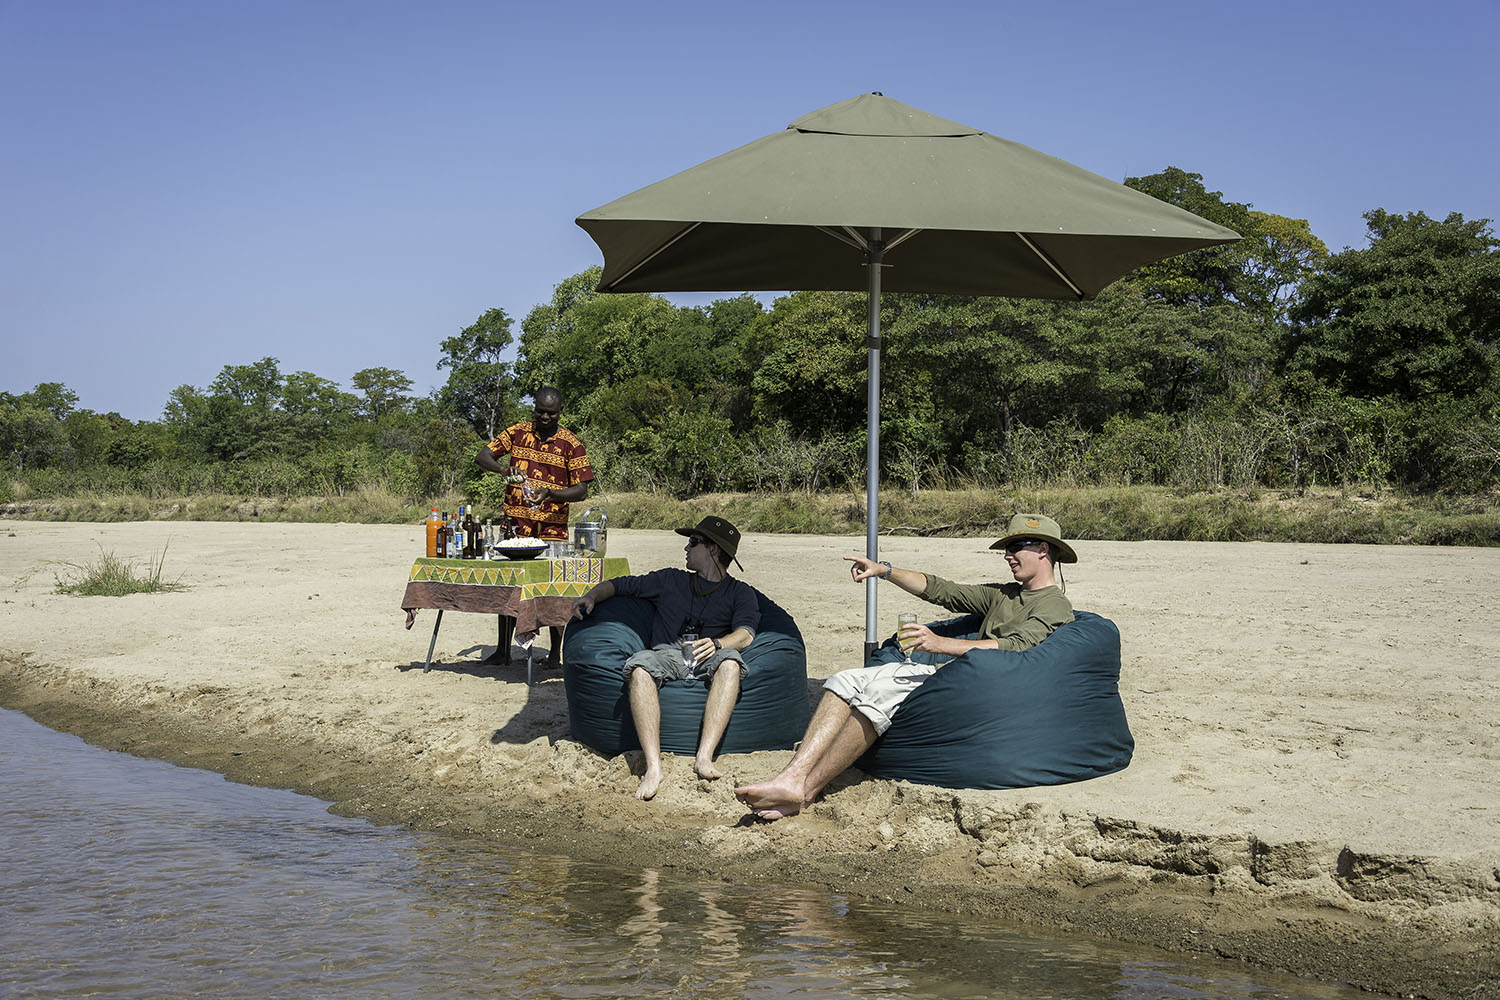 kapamba bushcamp lodge-zambia-in-style-safari-packages-lodges-south-luangwa-national-park-relaxing-on-river-drinks